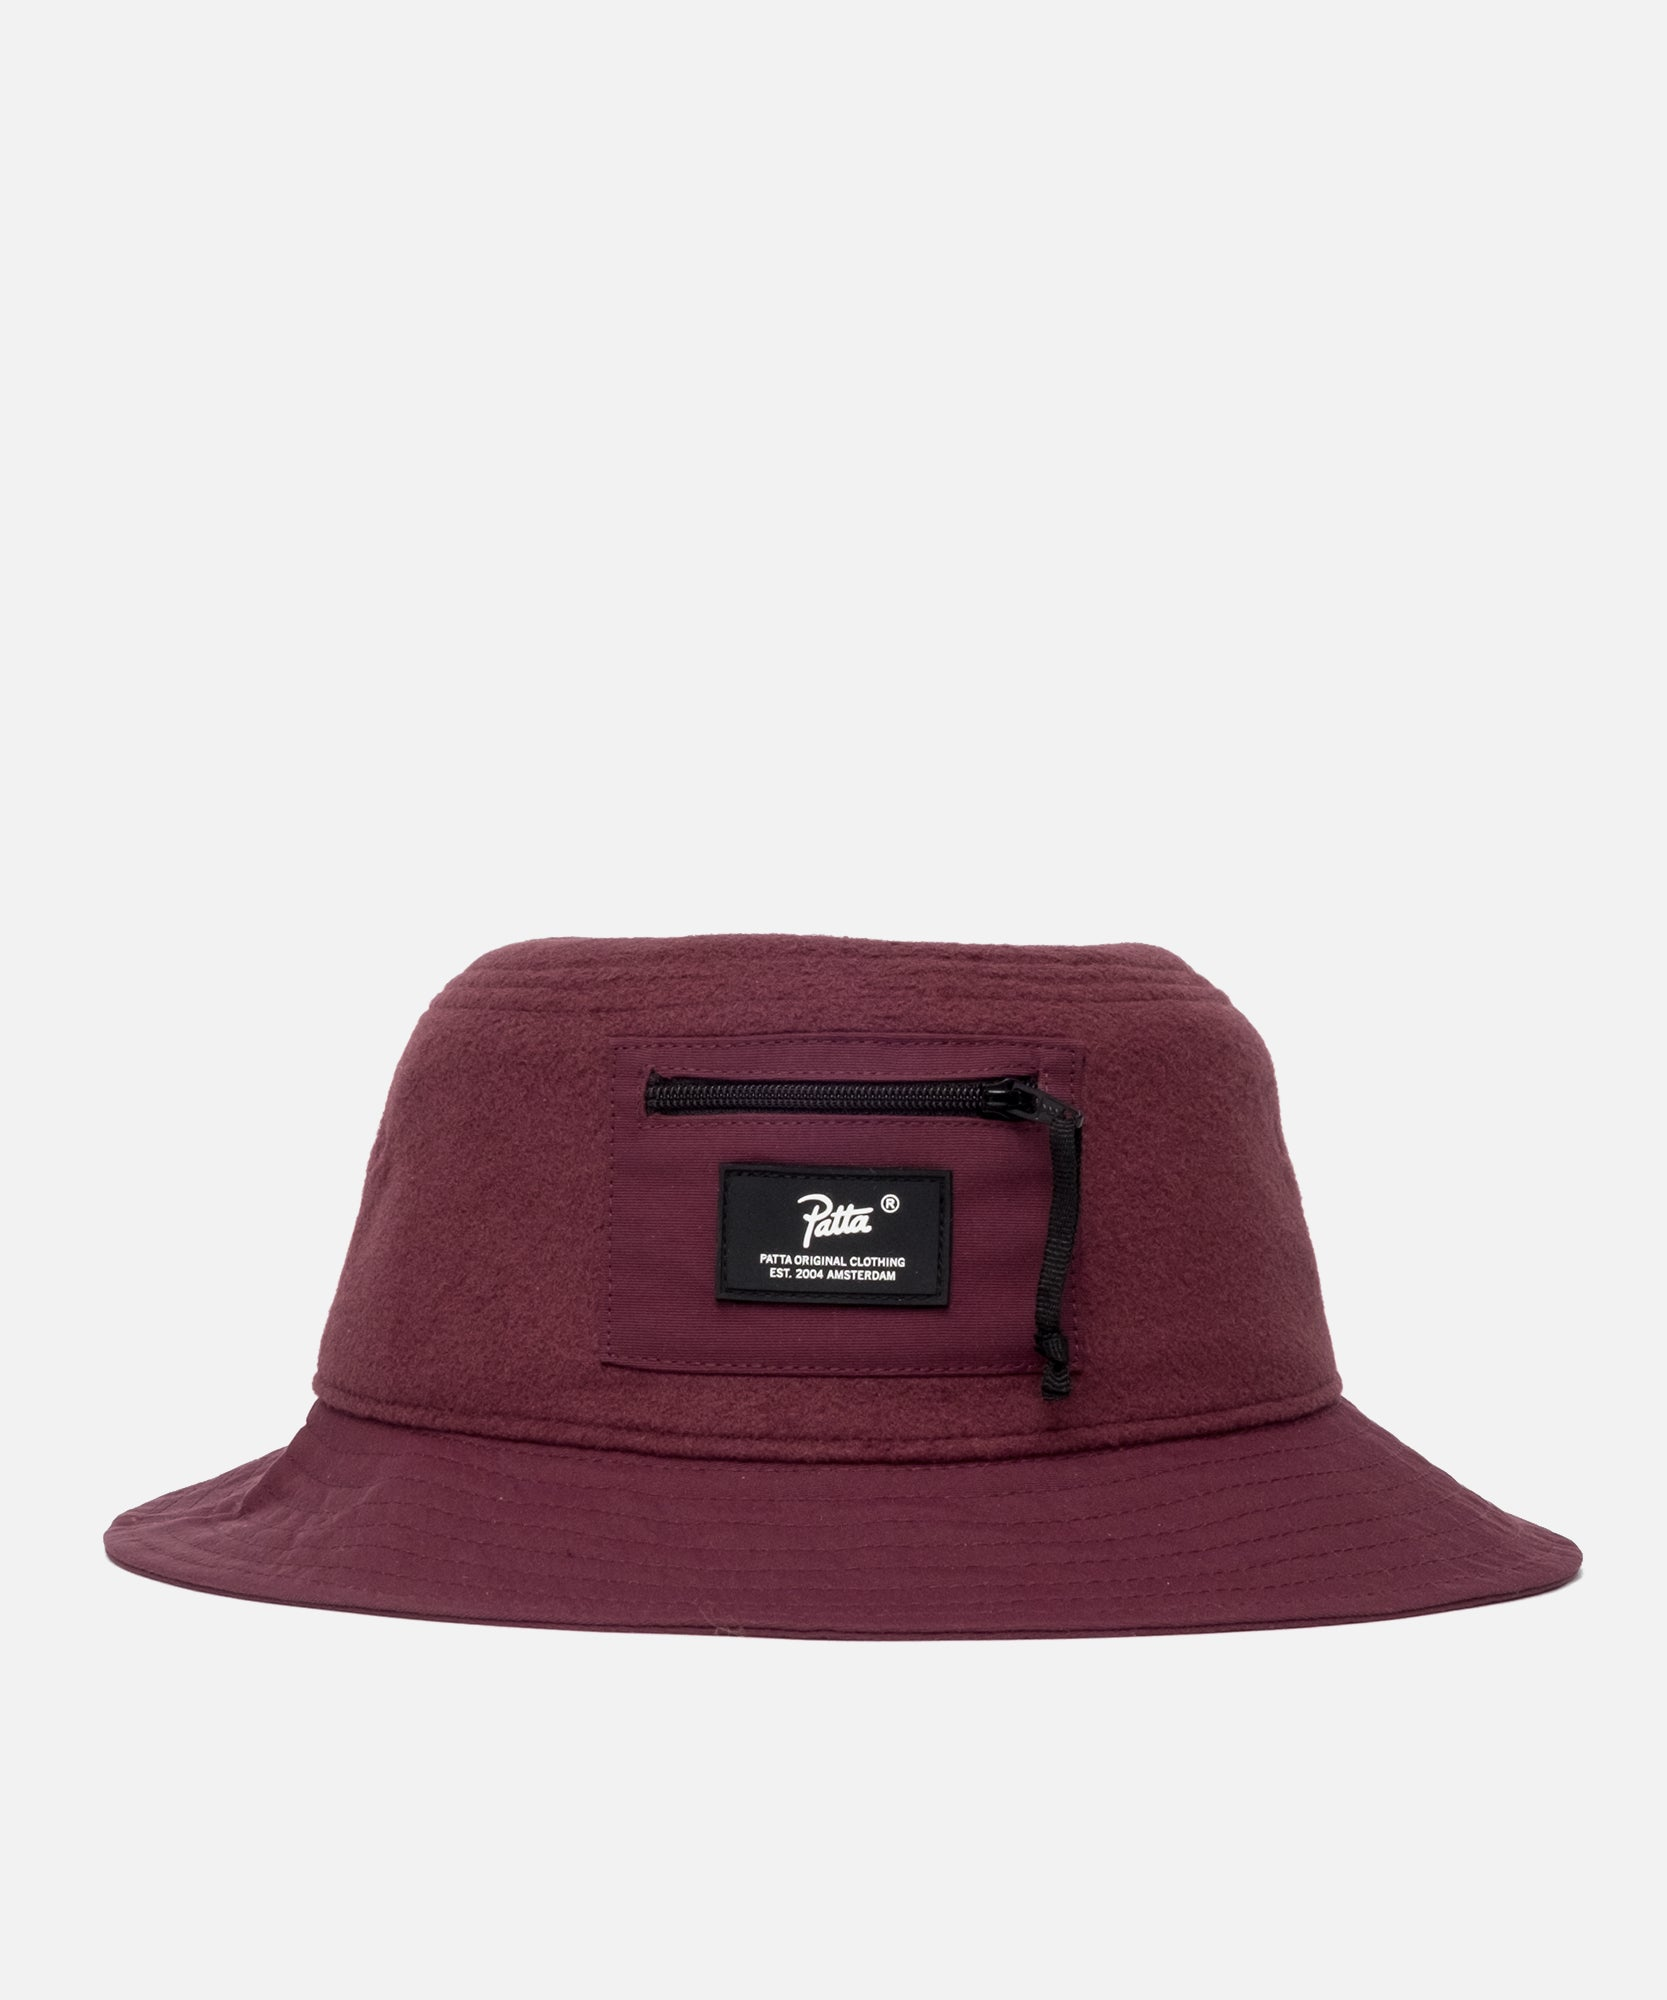 Patta Polartec Bucket Hat (Port Royal/Eggplant)